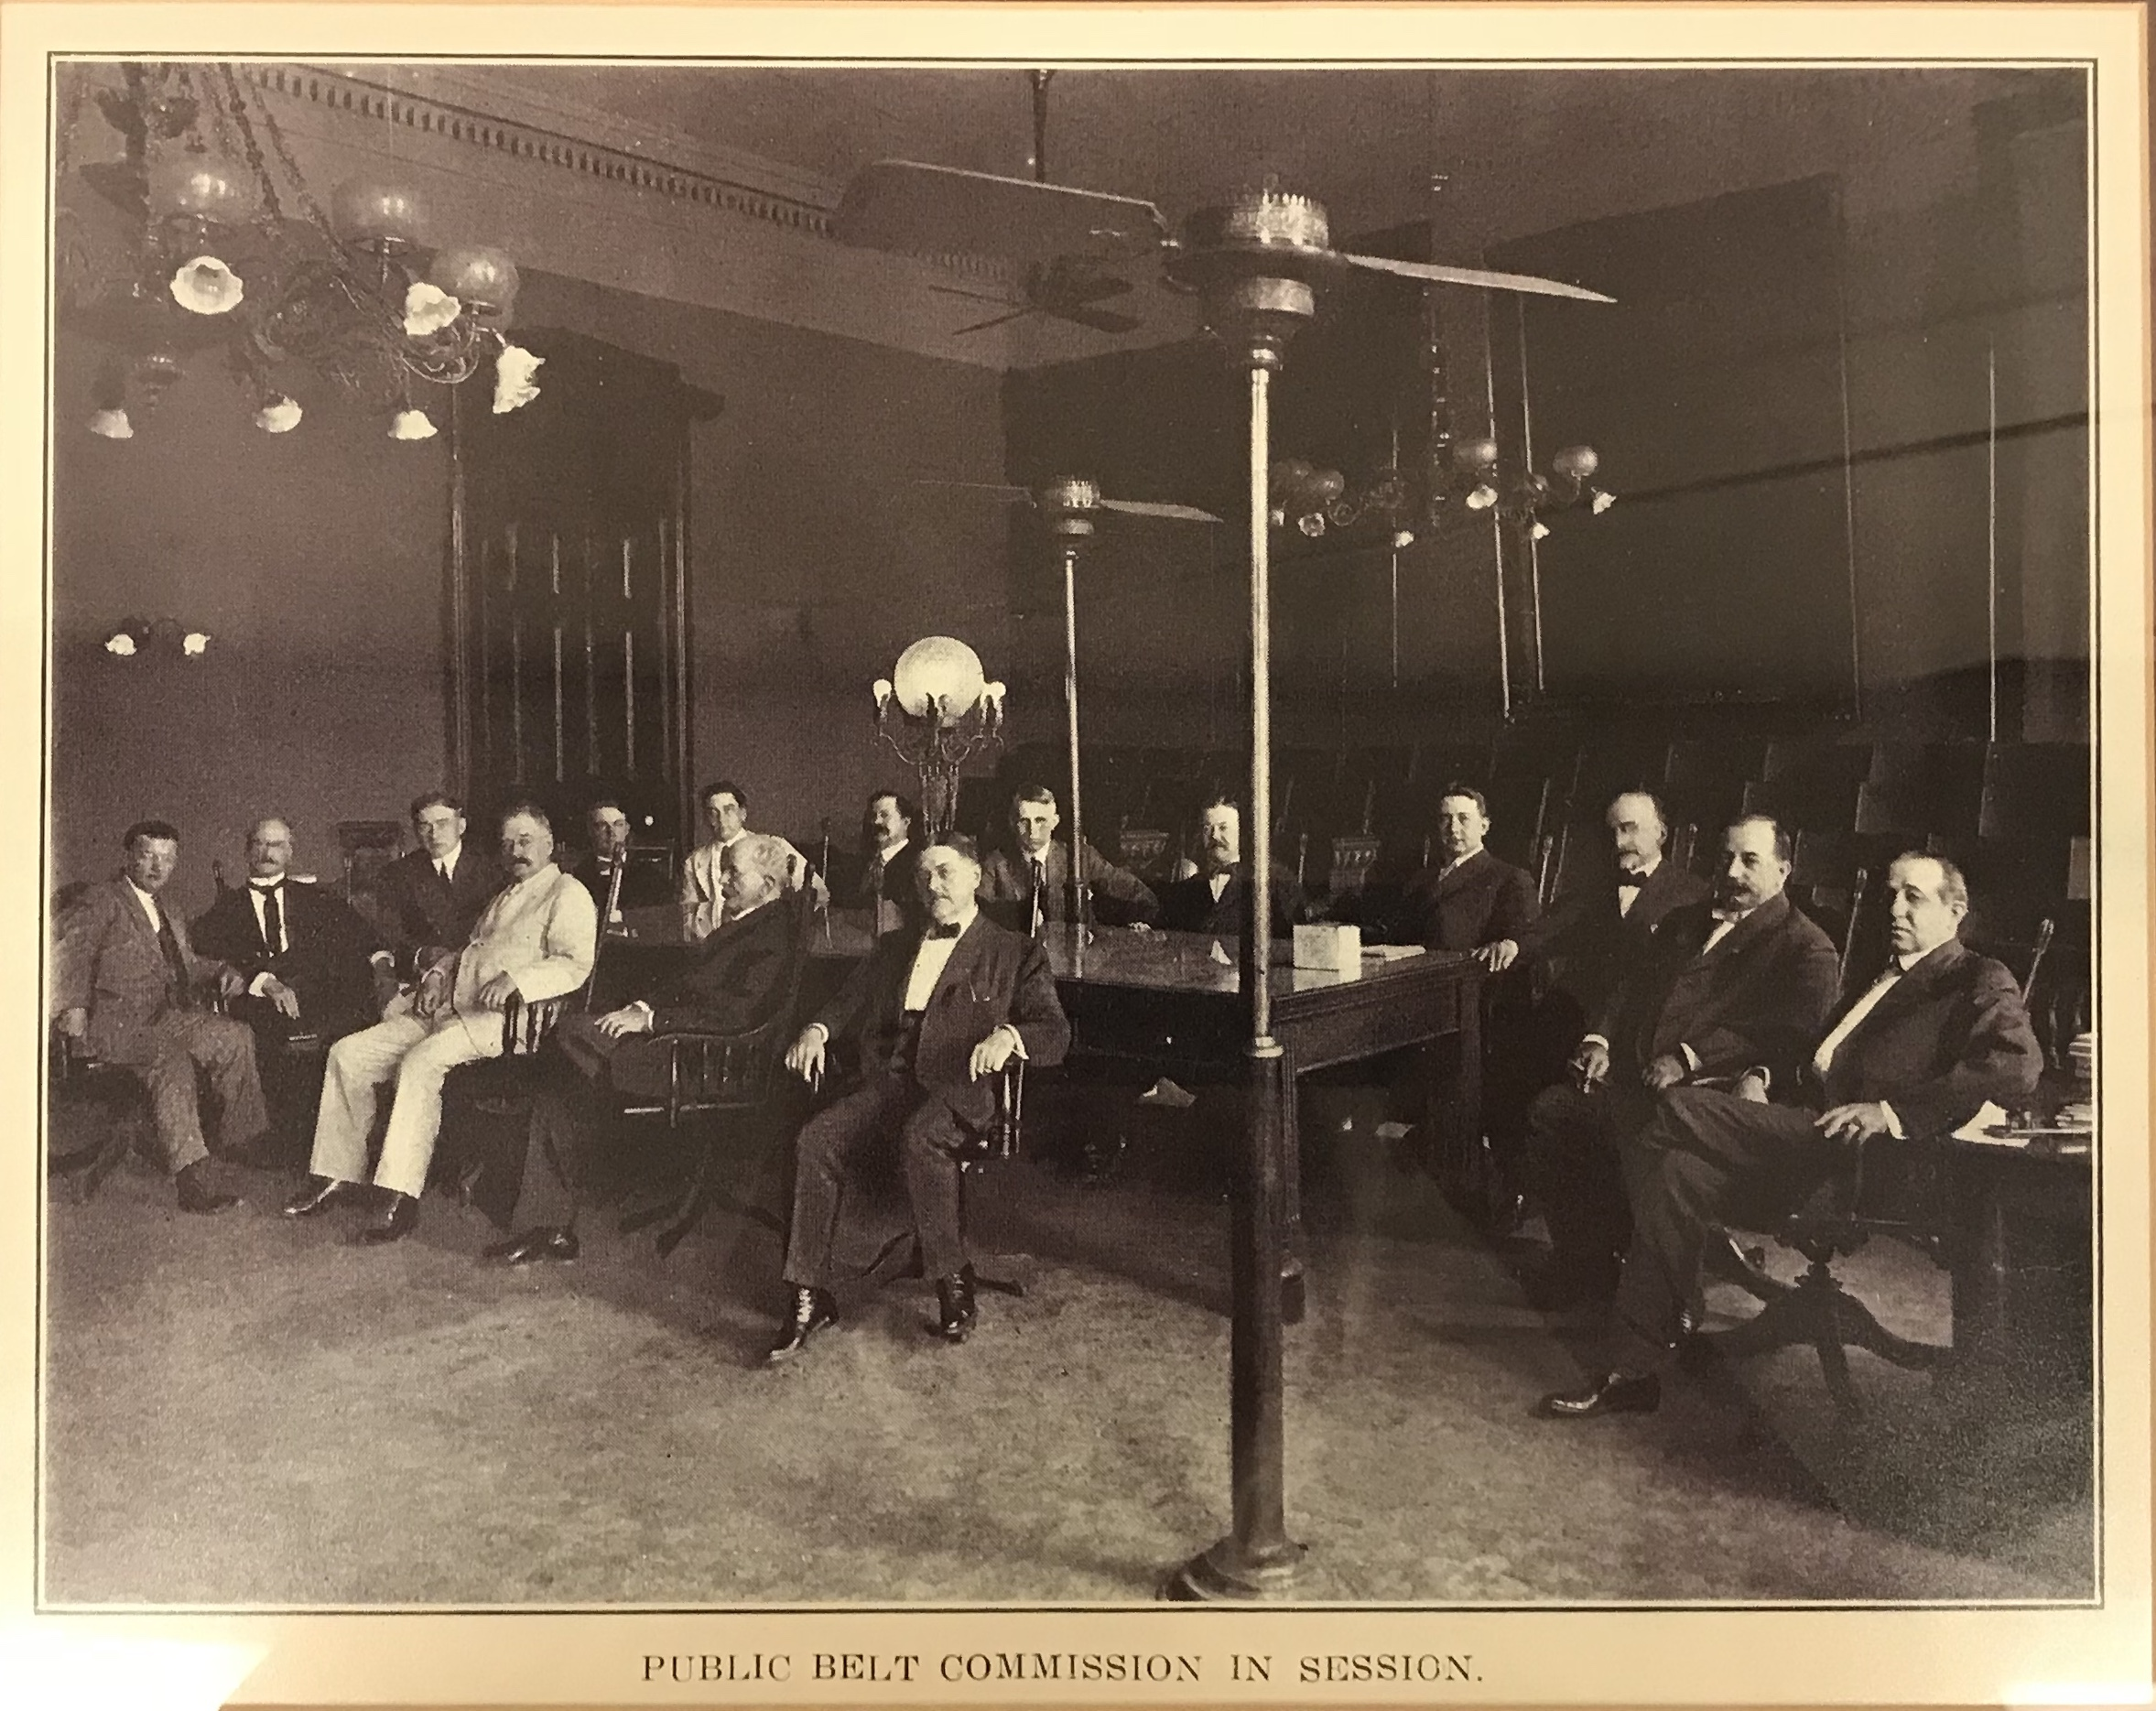 First NOPB board in 1904